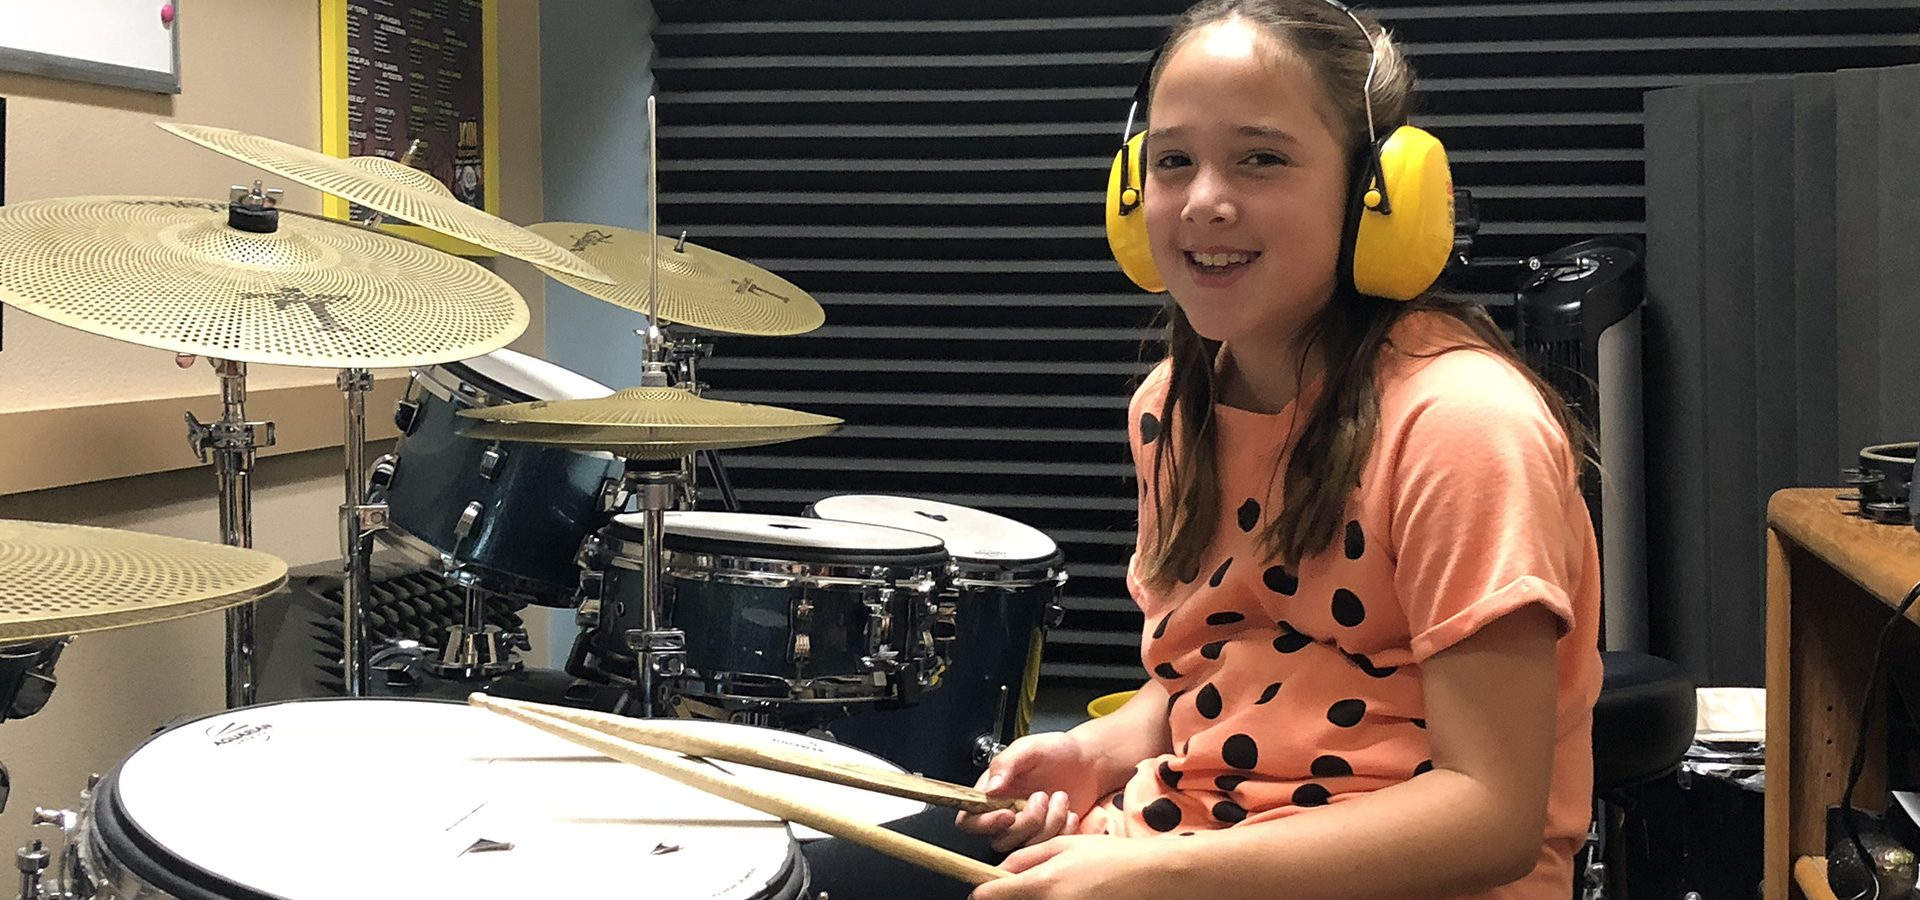 Intro to Music Camp - Drum Lessons - Sherman Oaks, Los Angeles - Join The Band